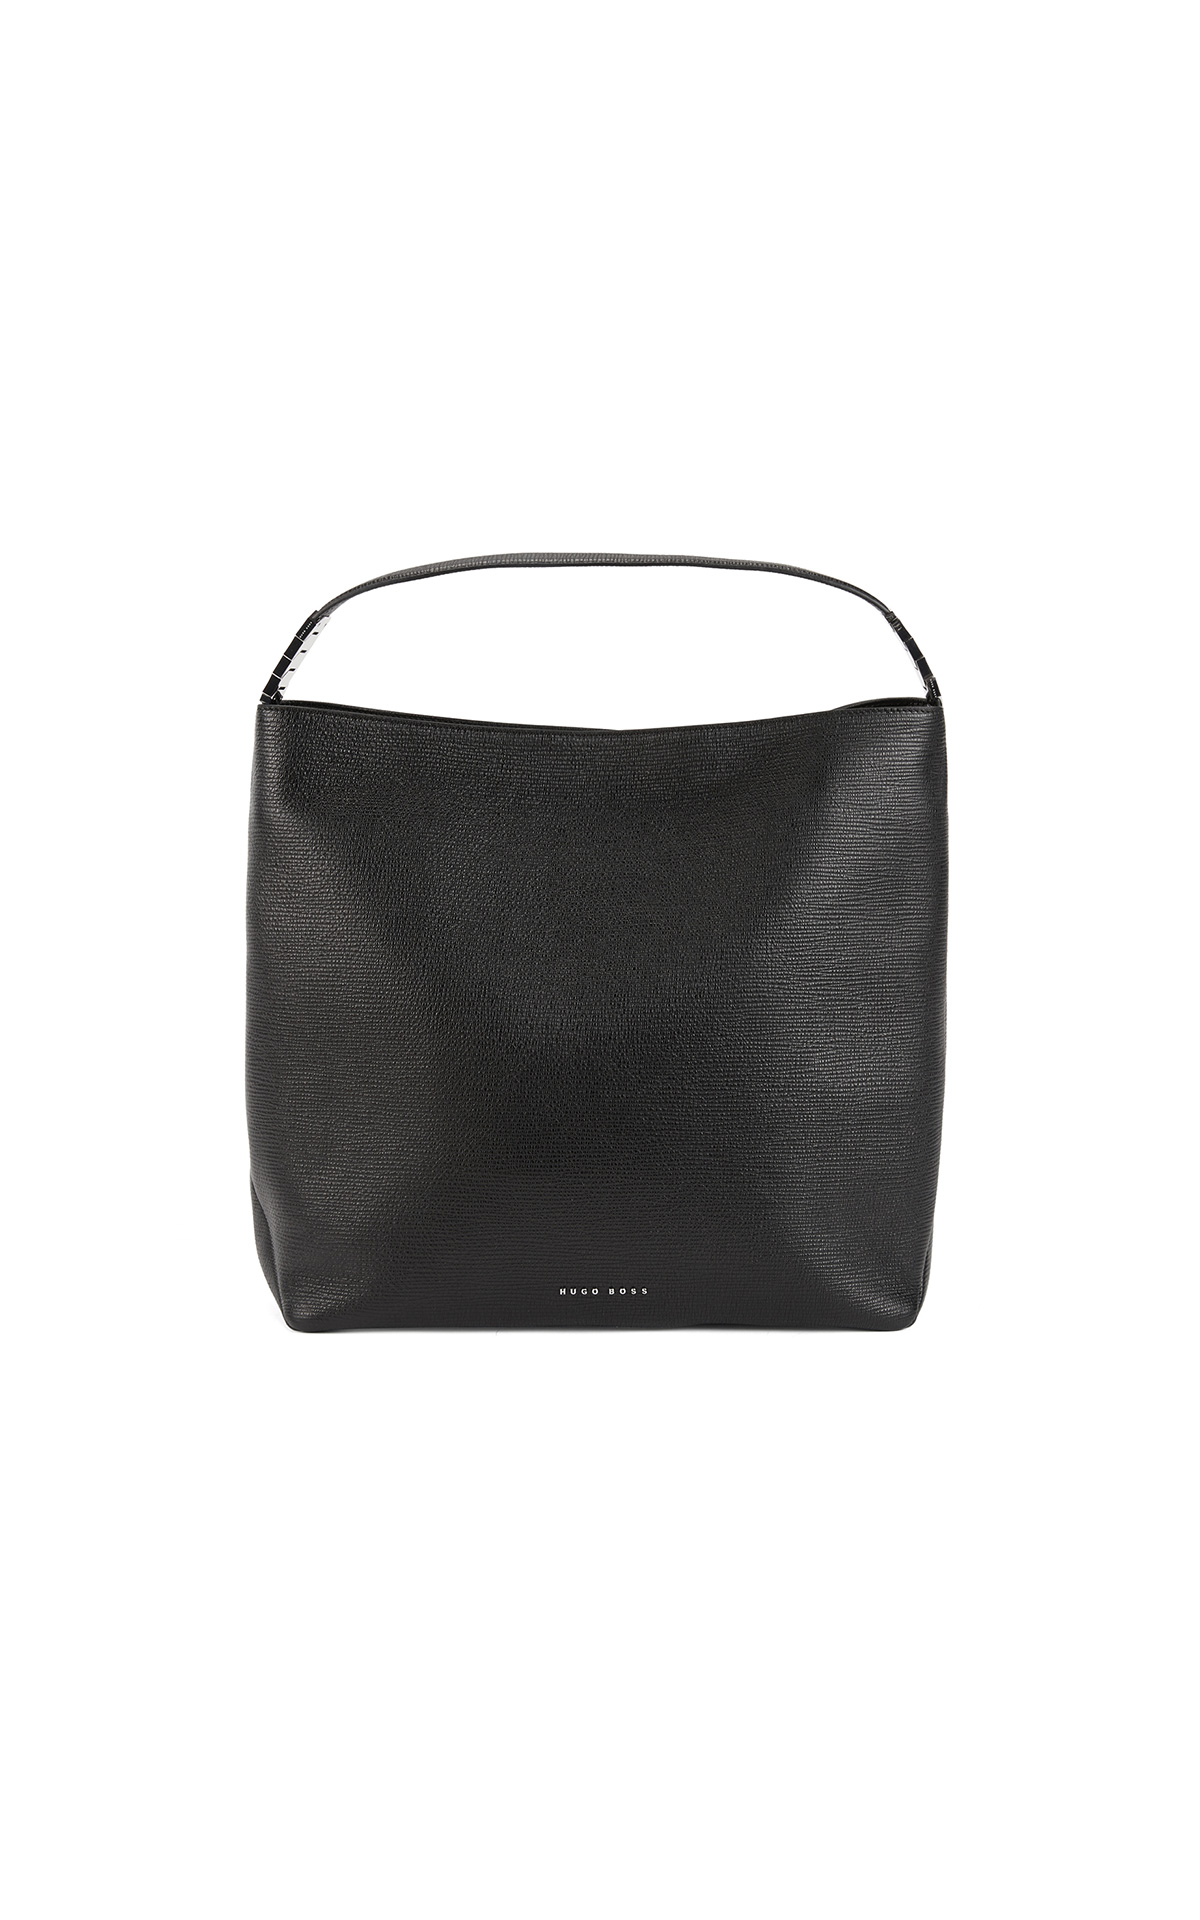 BOSS Veronika Hobo Bag